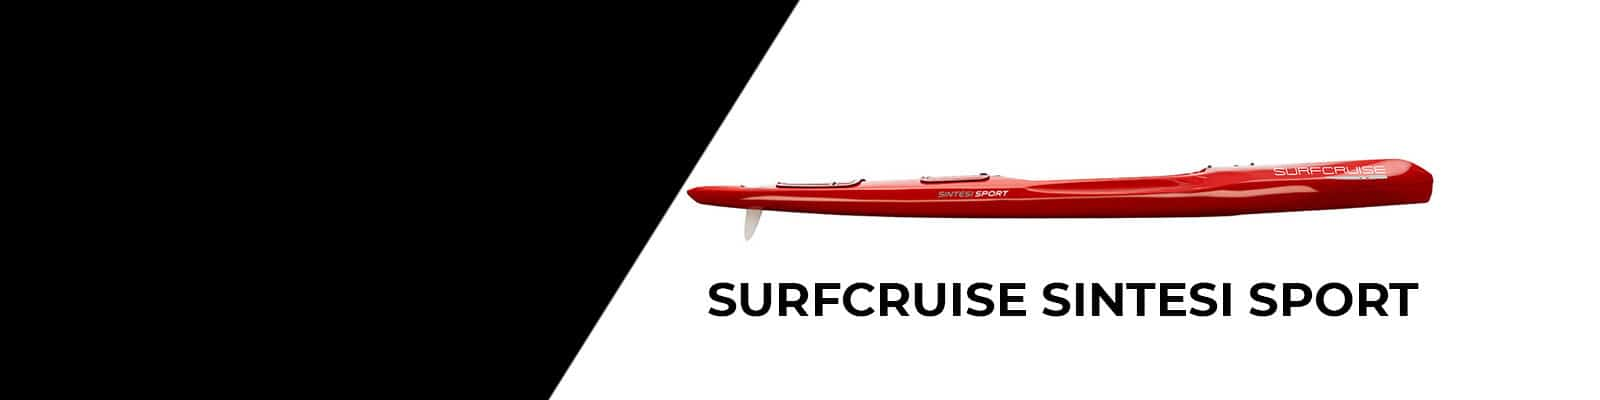 sintesi-sport-surfcruise-kayak